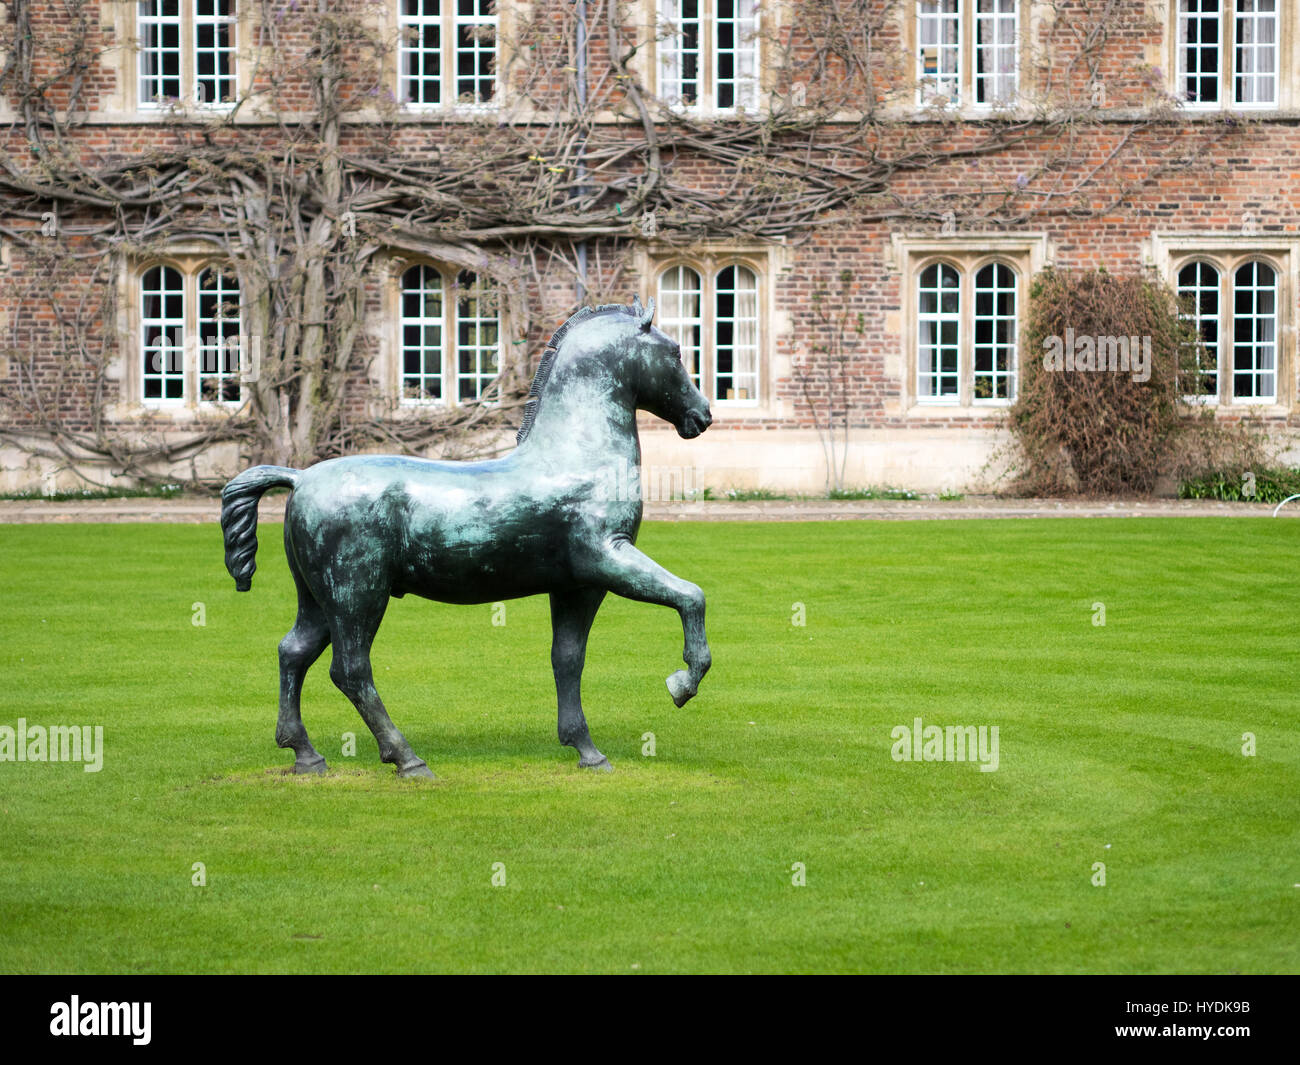 Bronze Horse sculpture by Barry Flanagan in the First Court area, Jesus College, Cambridge. Part of the University - Stock Image